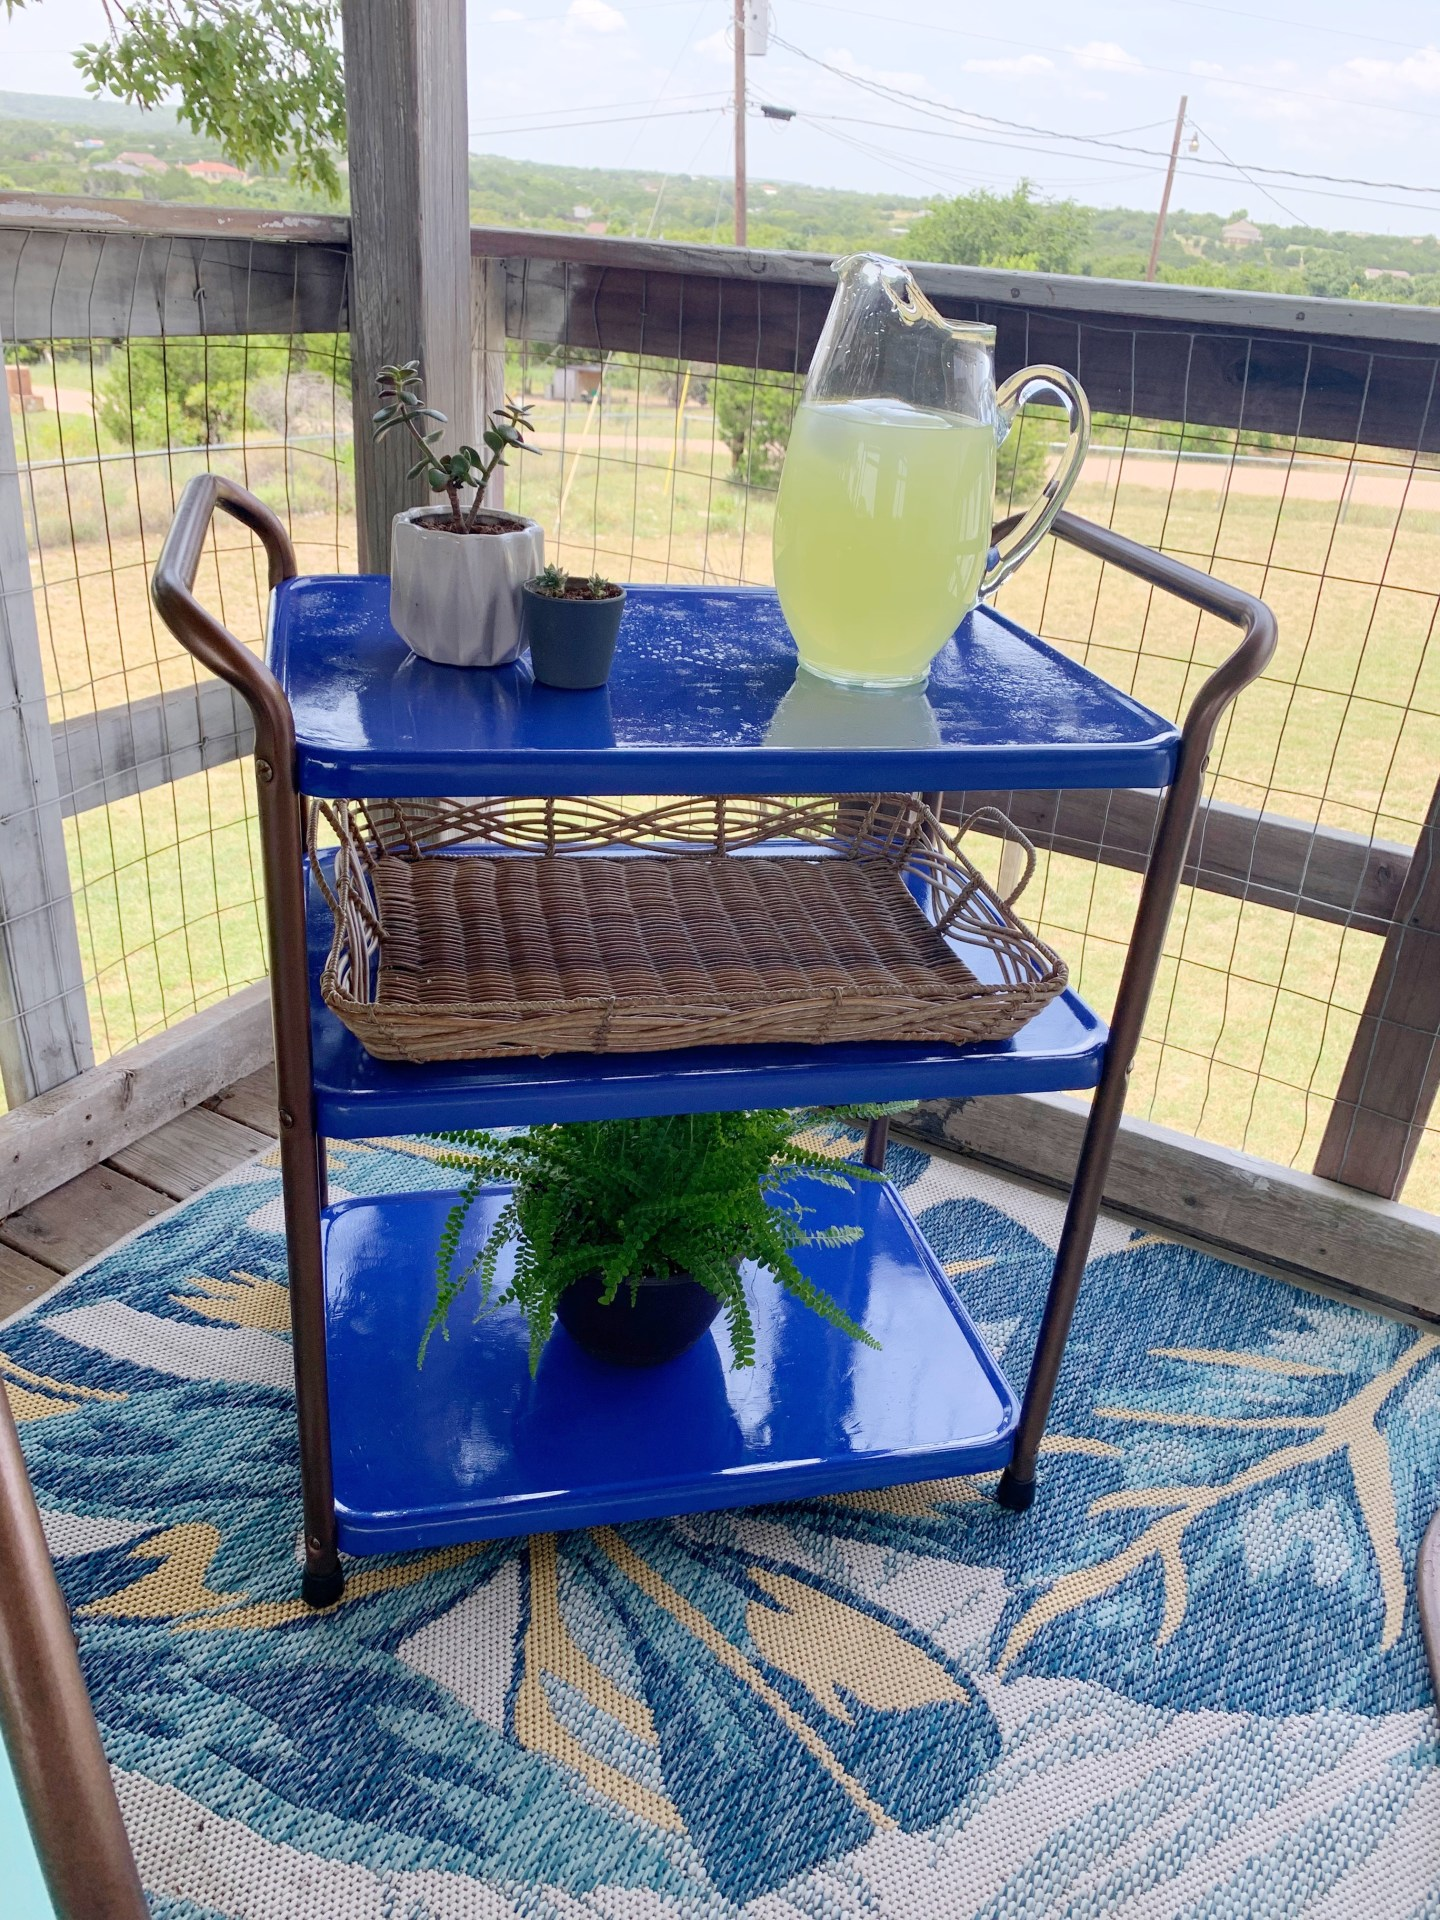 How to refurbish a vintage metal bar cart: the after pic.